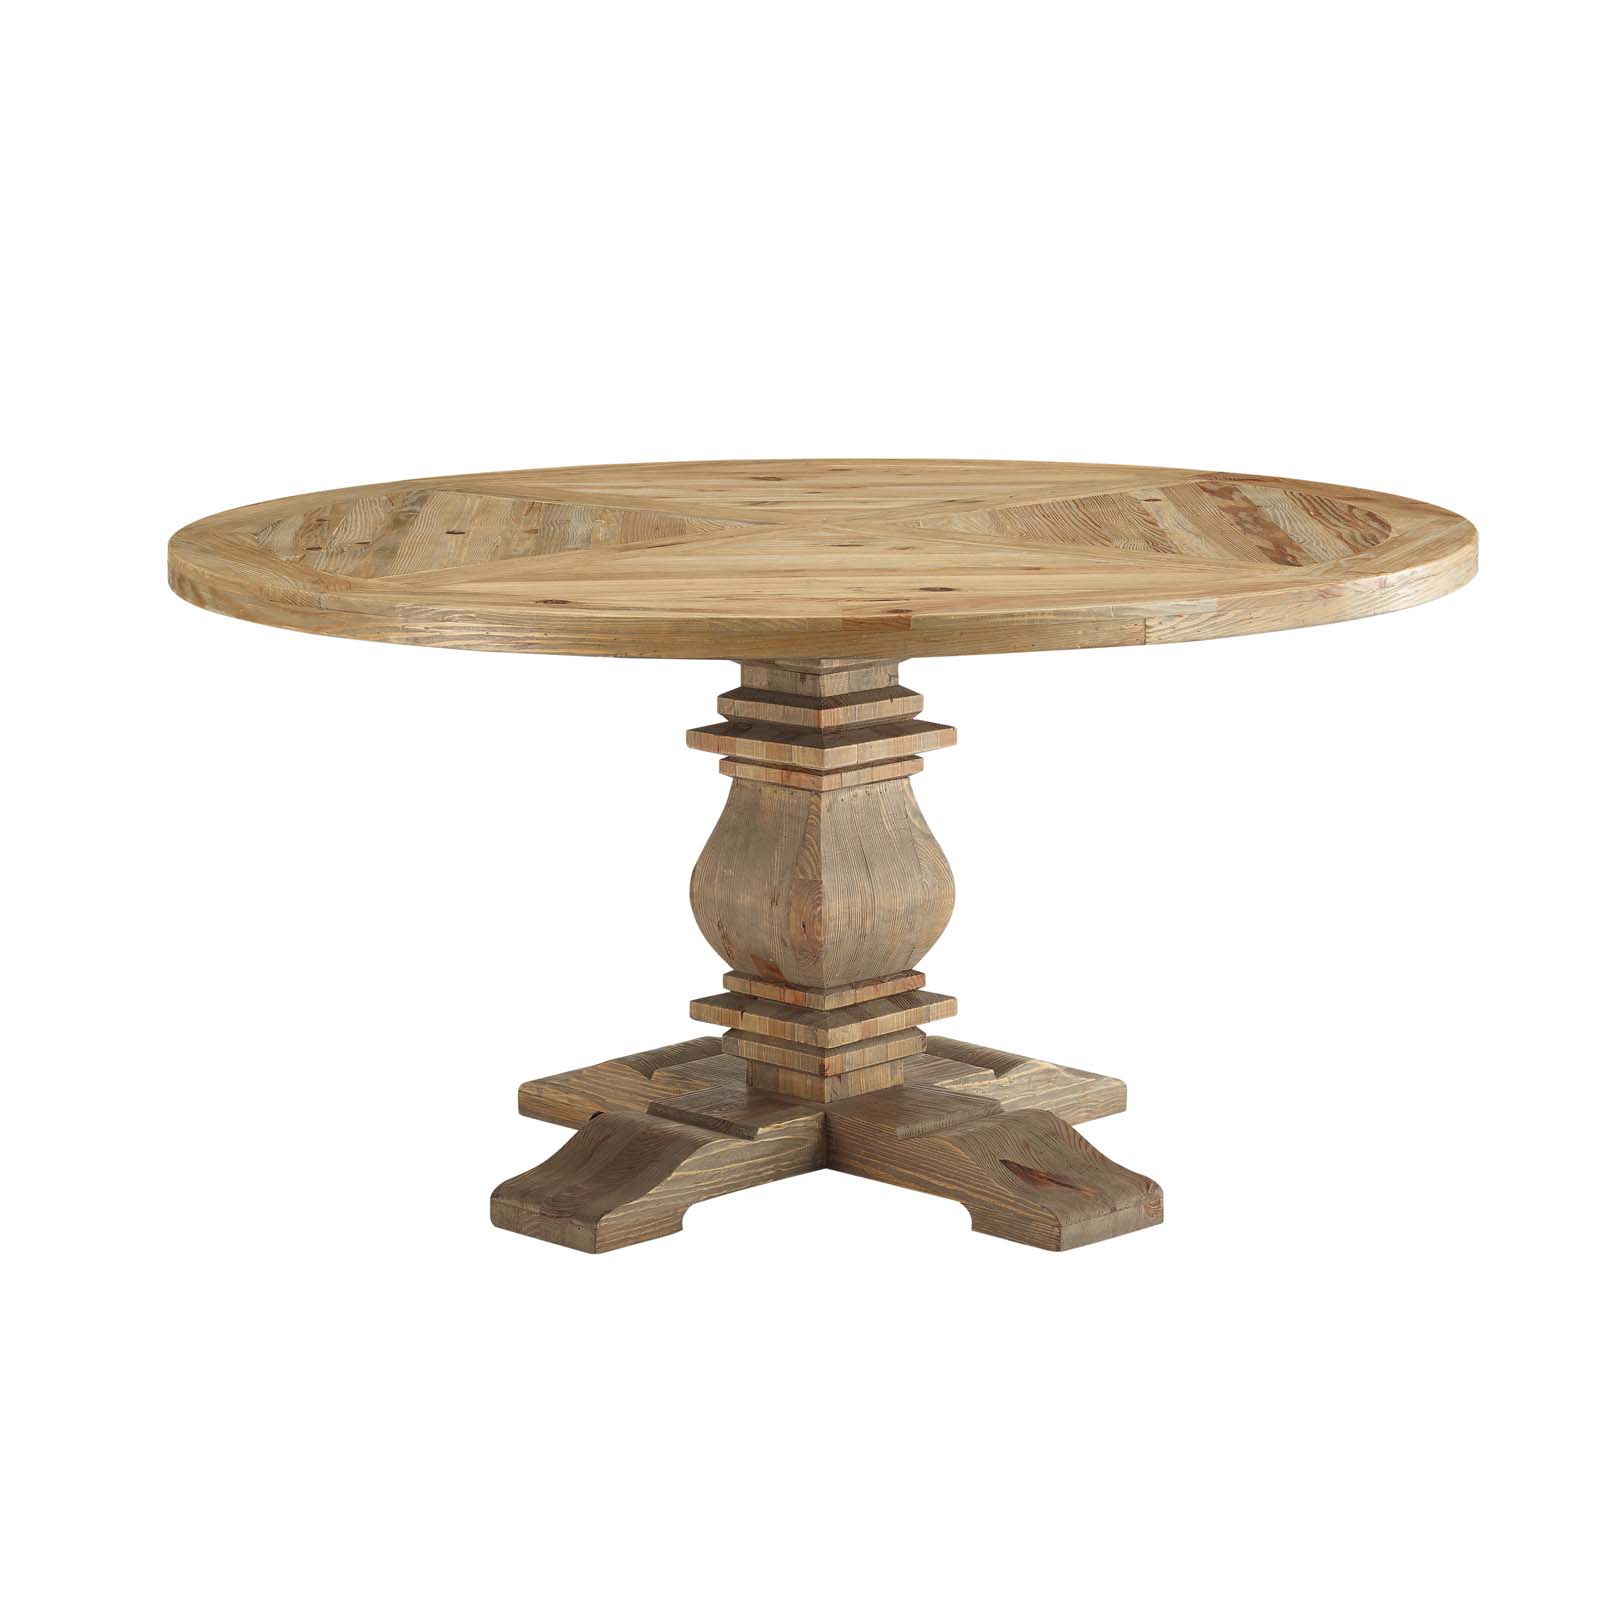 "Wood Round Dining Table: Column 59"" Round Pine Wood Dining Table Brown"